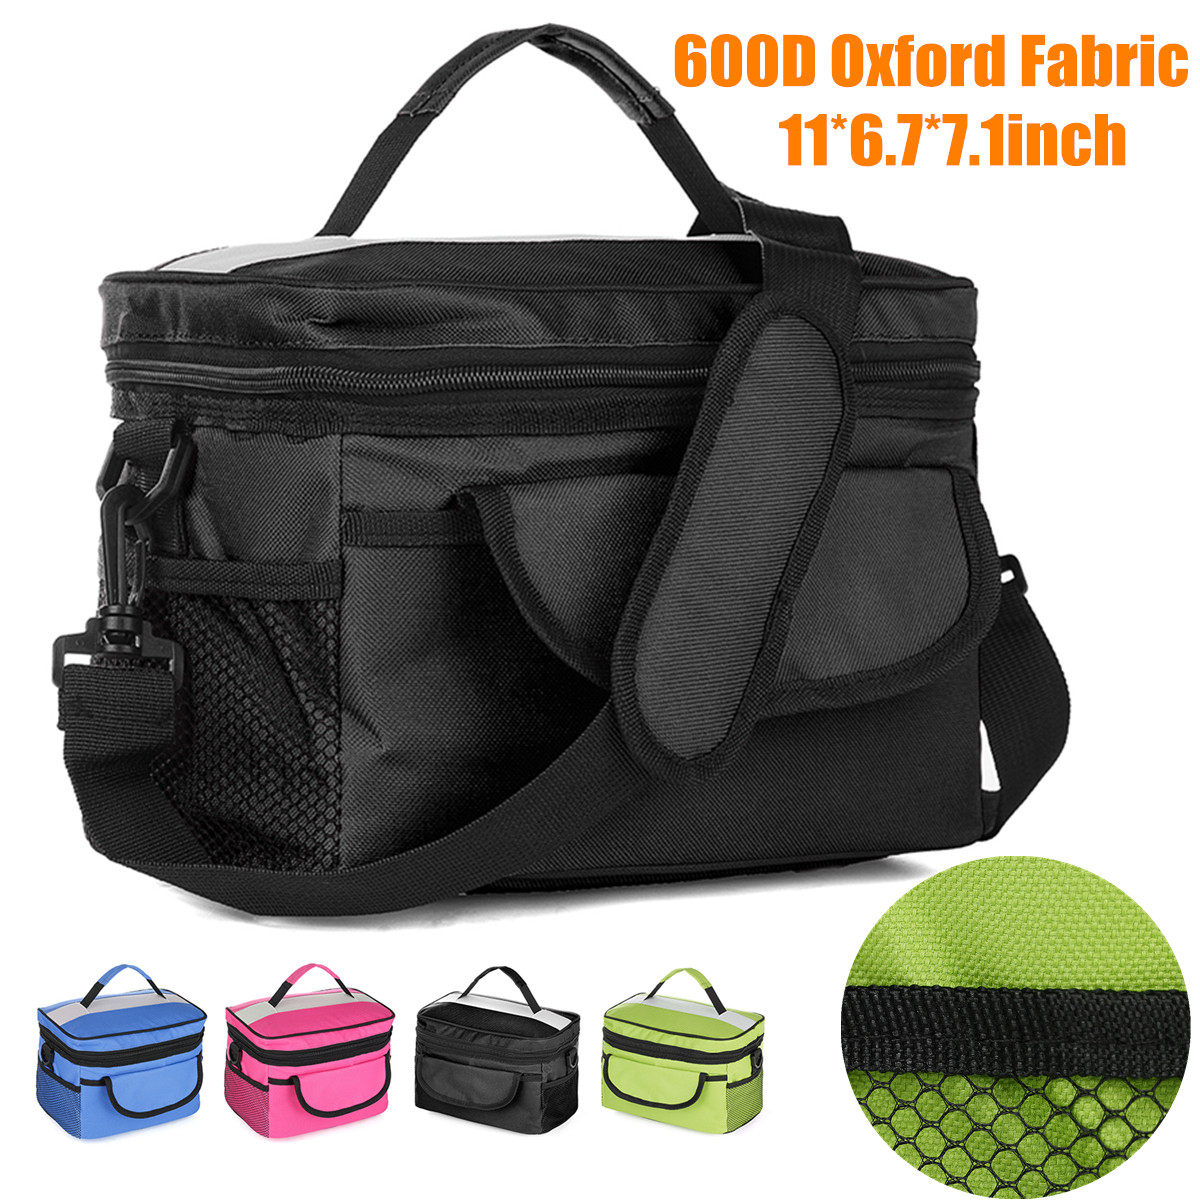 Large Waterproof Portable Thermal Insulated Cooler Keep Warm Lunch Box Bag Food Drink Storage Bag Picnic Carry Tote with Shoulder Strap Handle Green,Blue,Red,Black